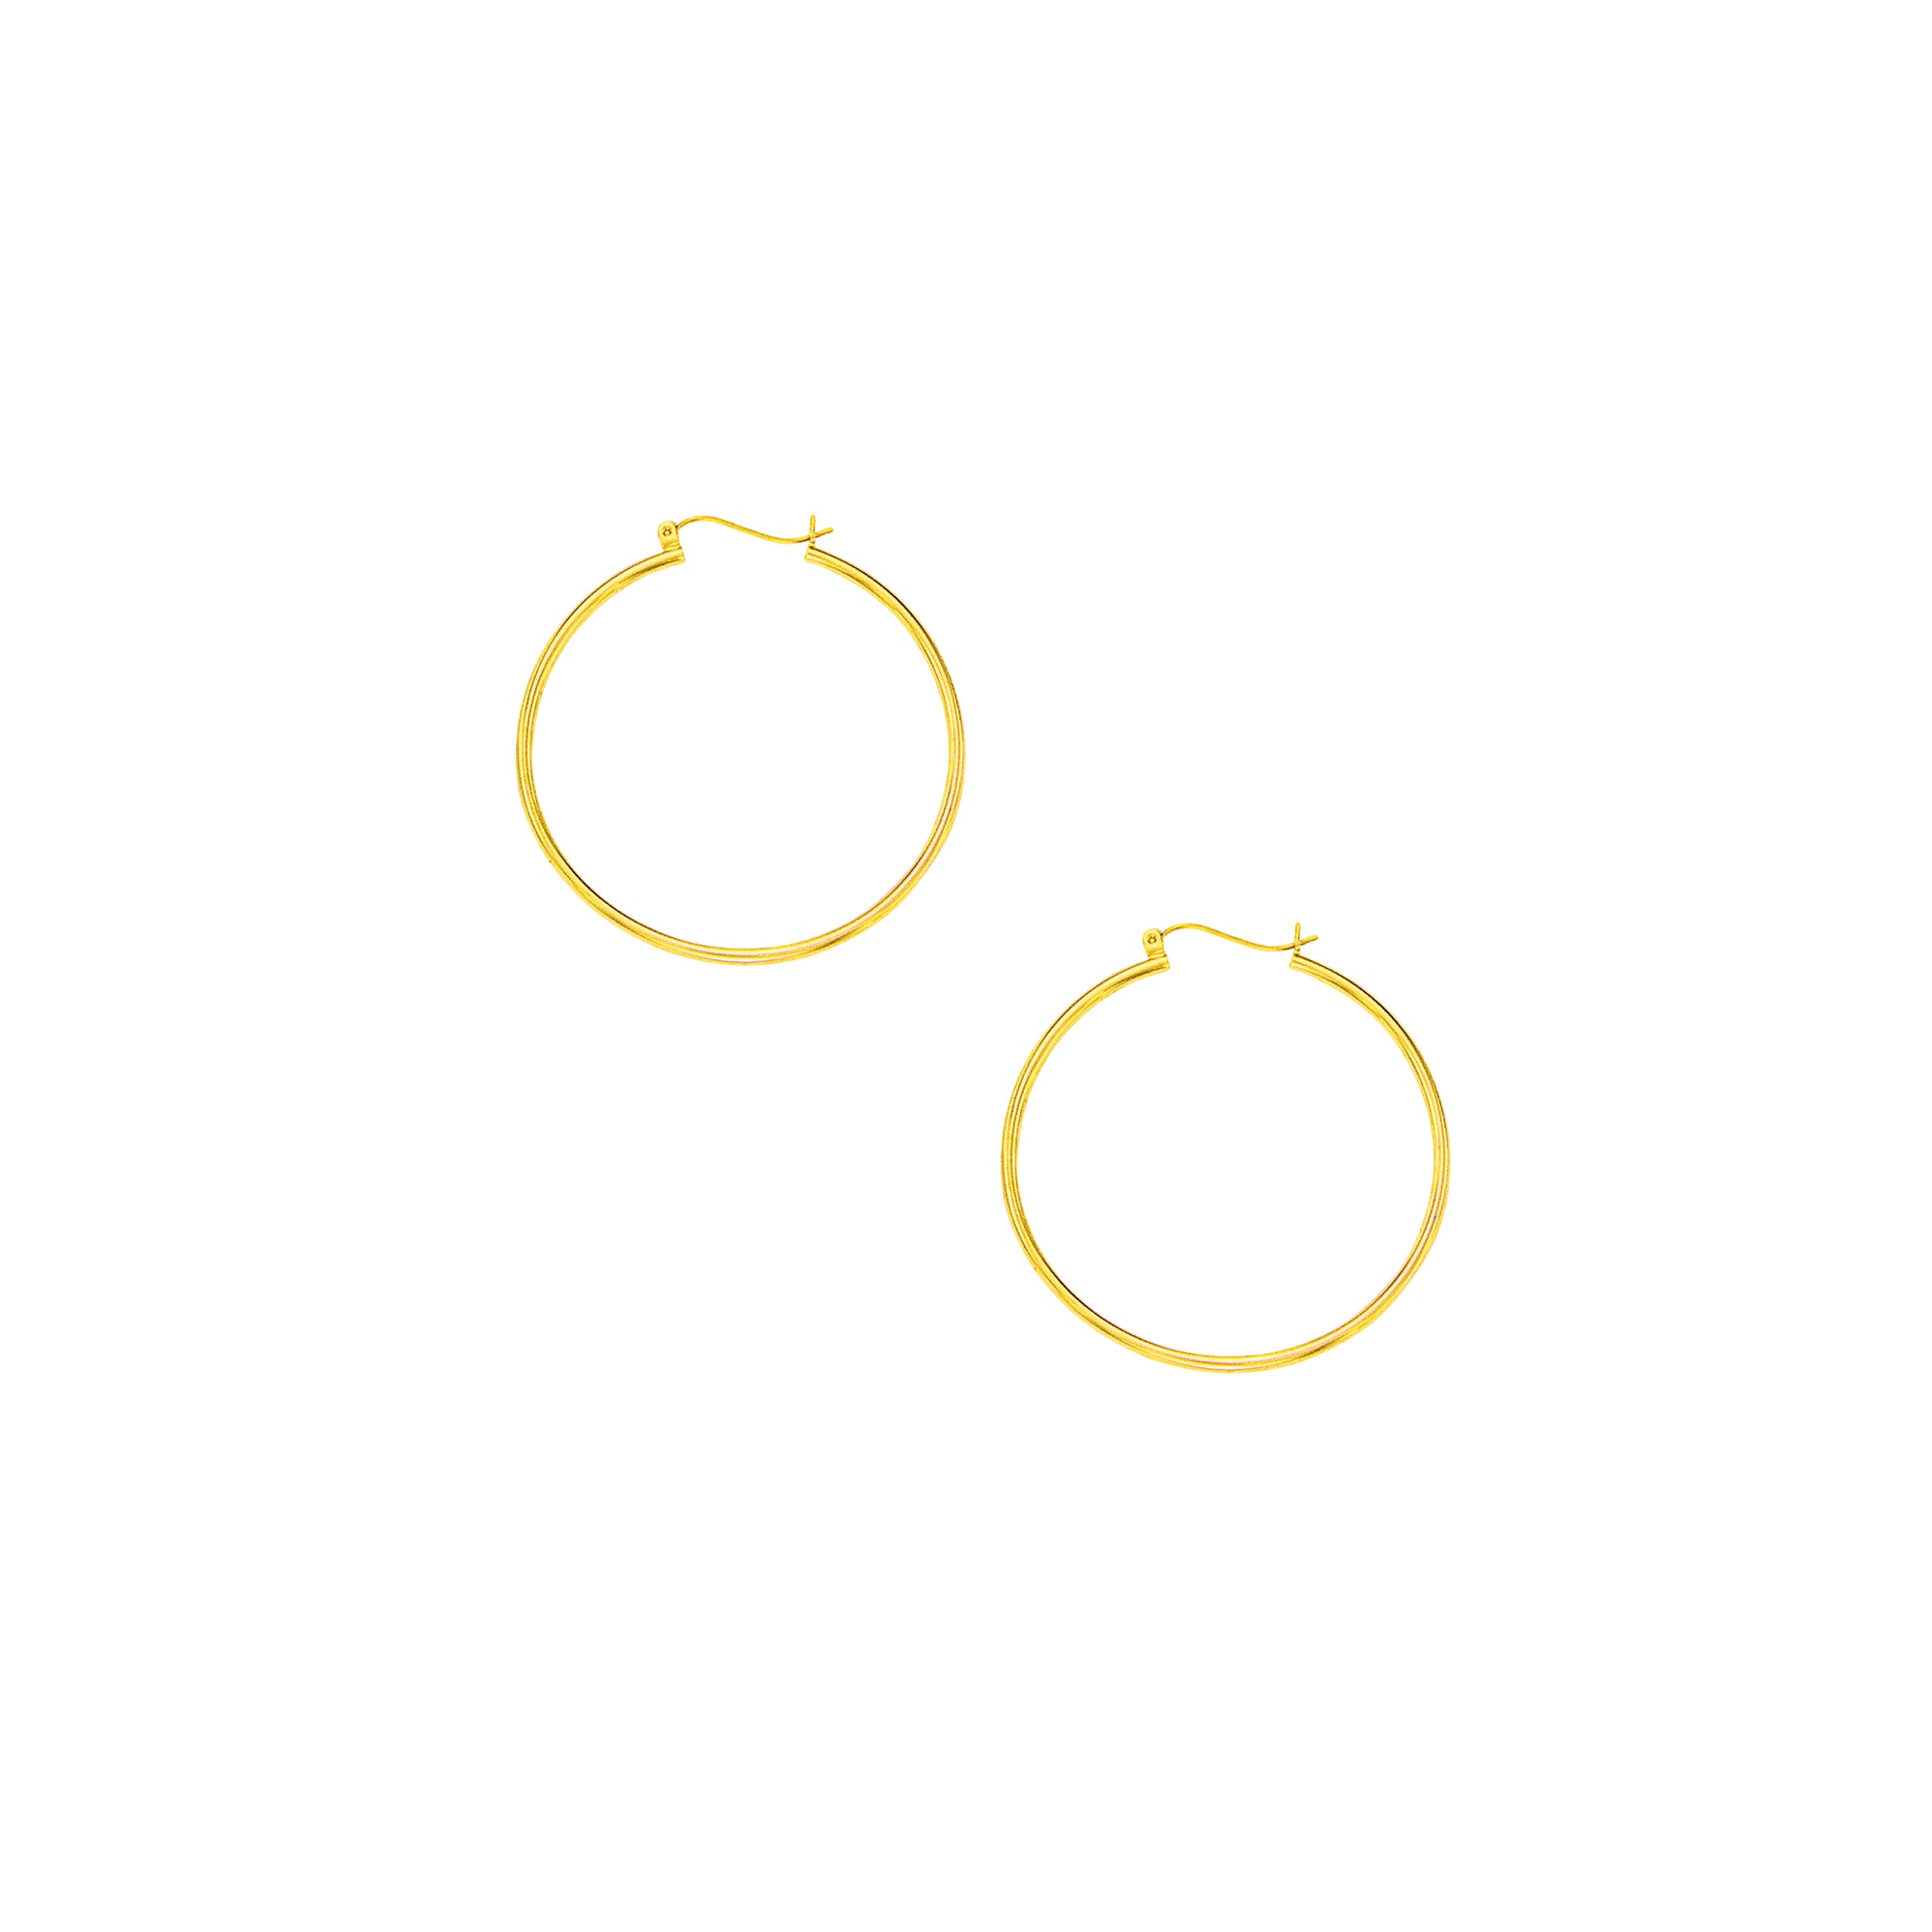 10K Gold 1.5x40mm Hoop Earring